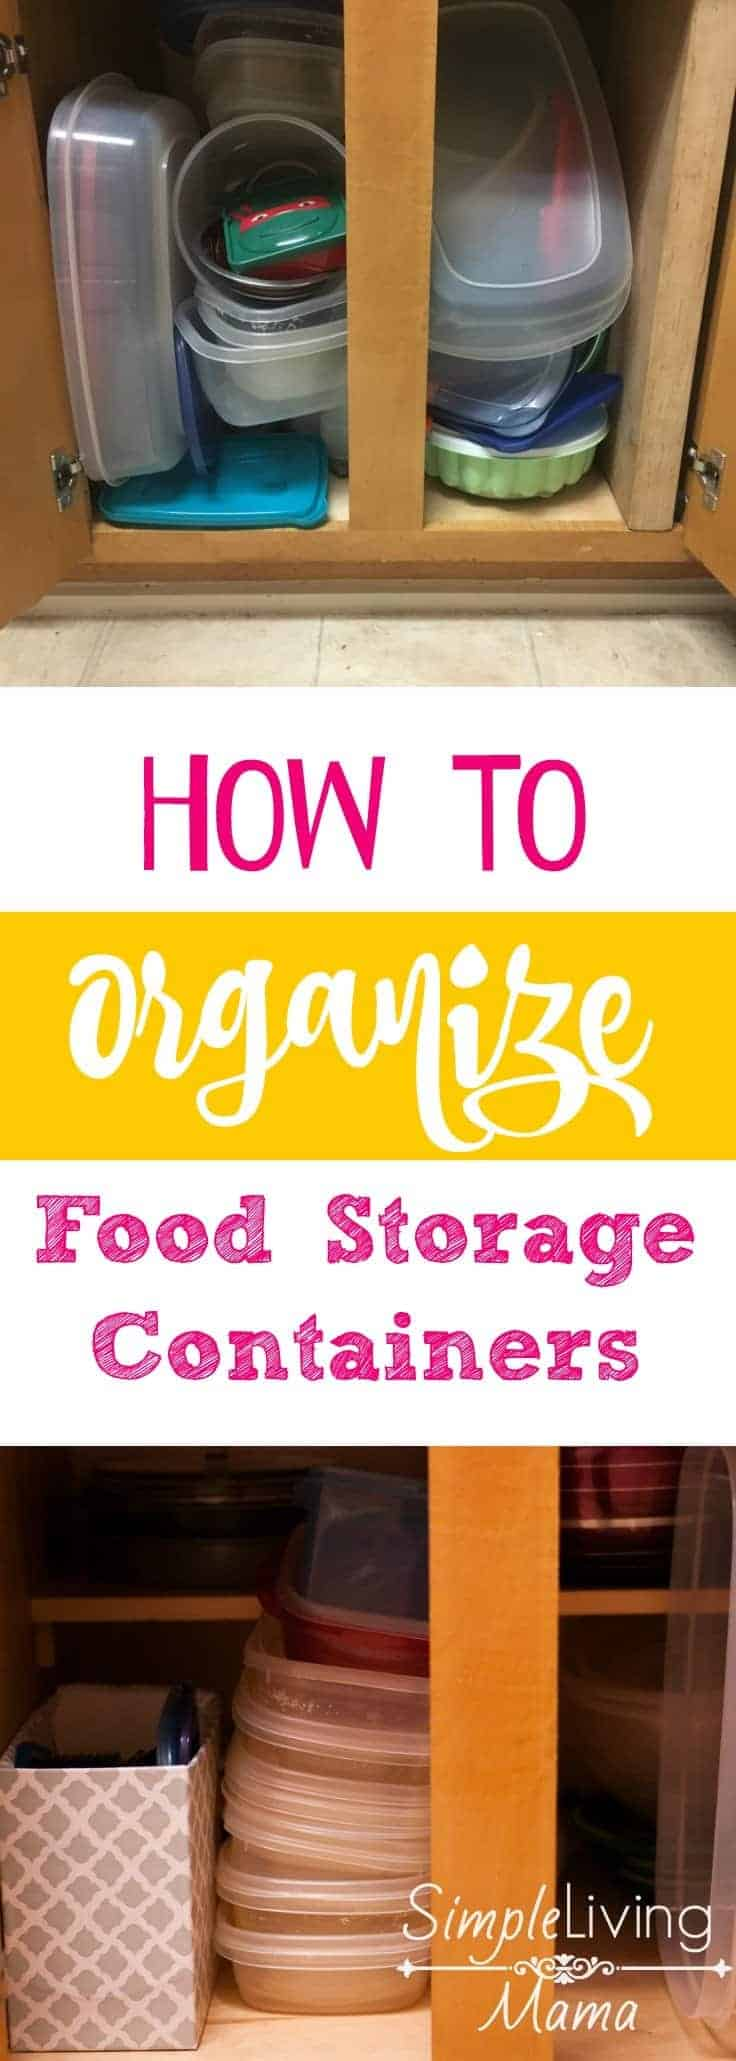 How To Organize Food Storage Containers Simple Living Mama